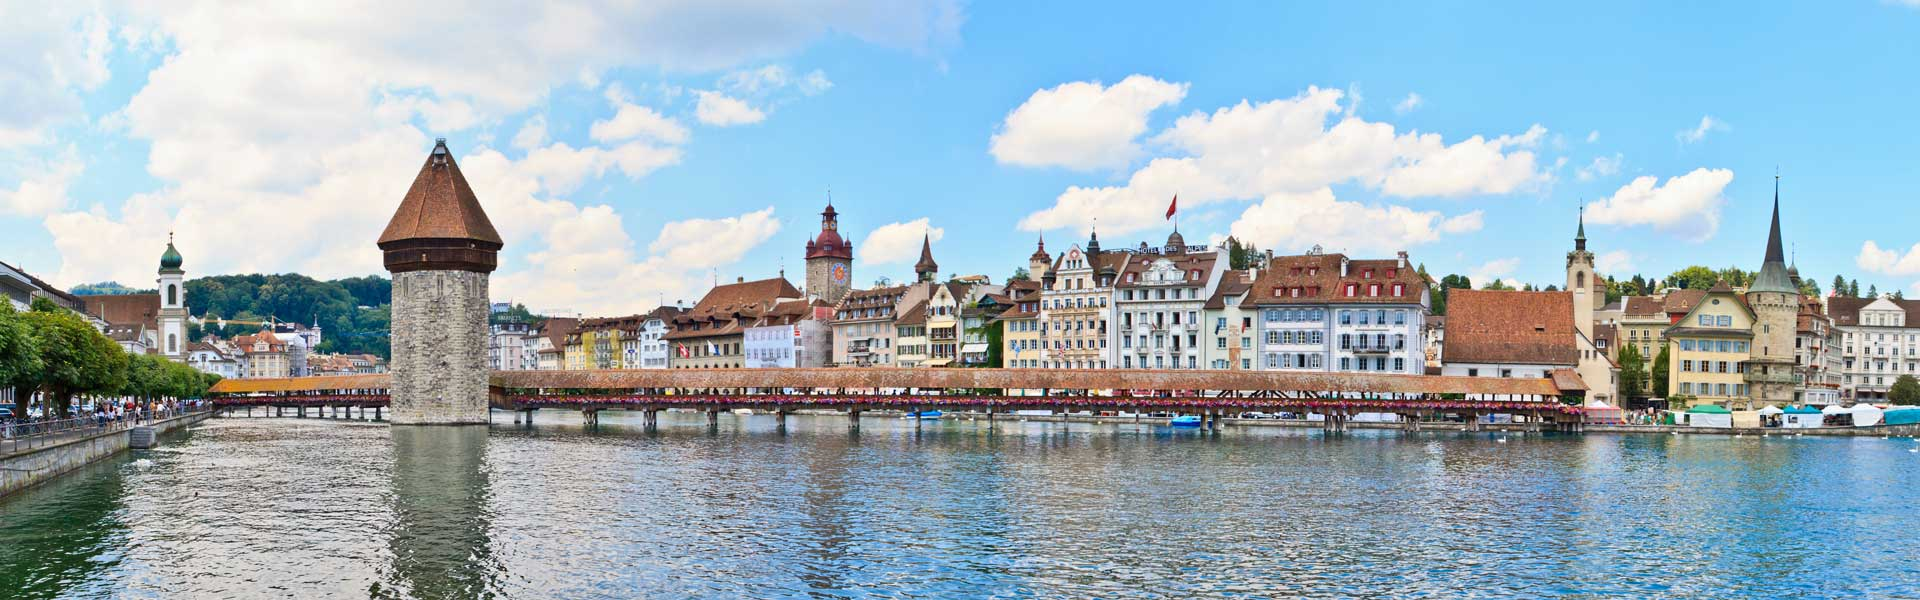 switzerland-tour_luzern-chapel-bridge-panorama